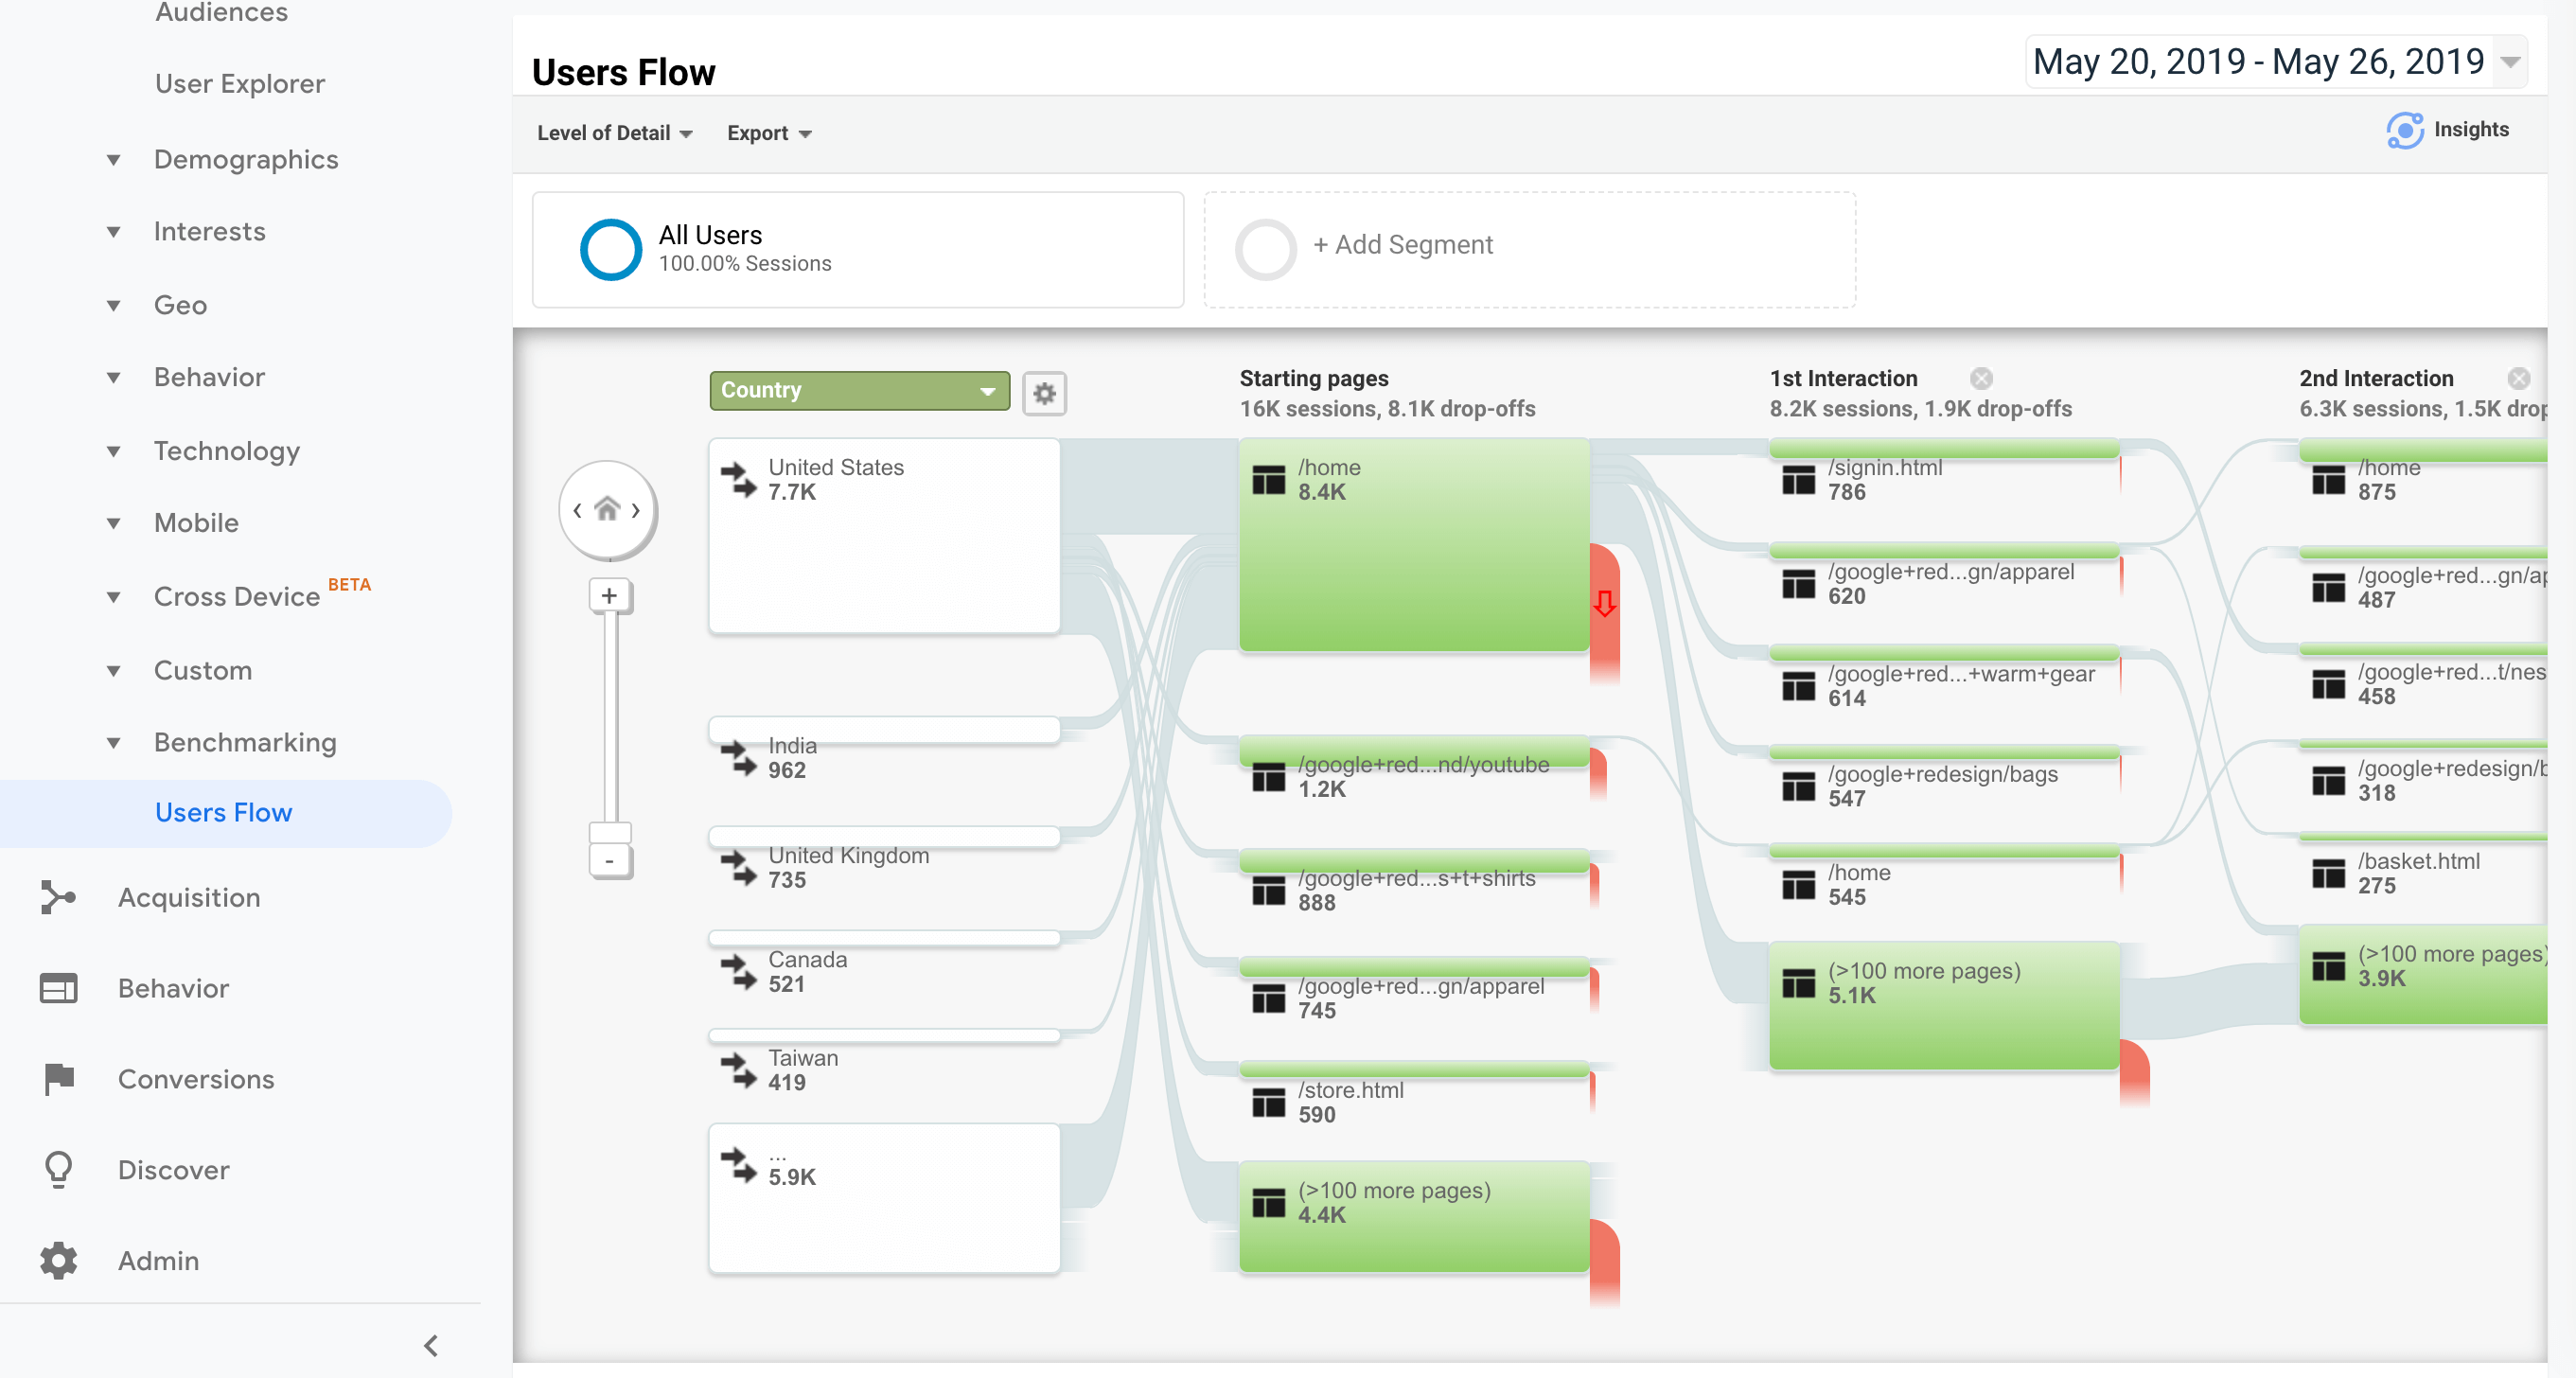 A user flow chart from Google Analytics.